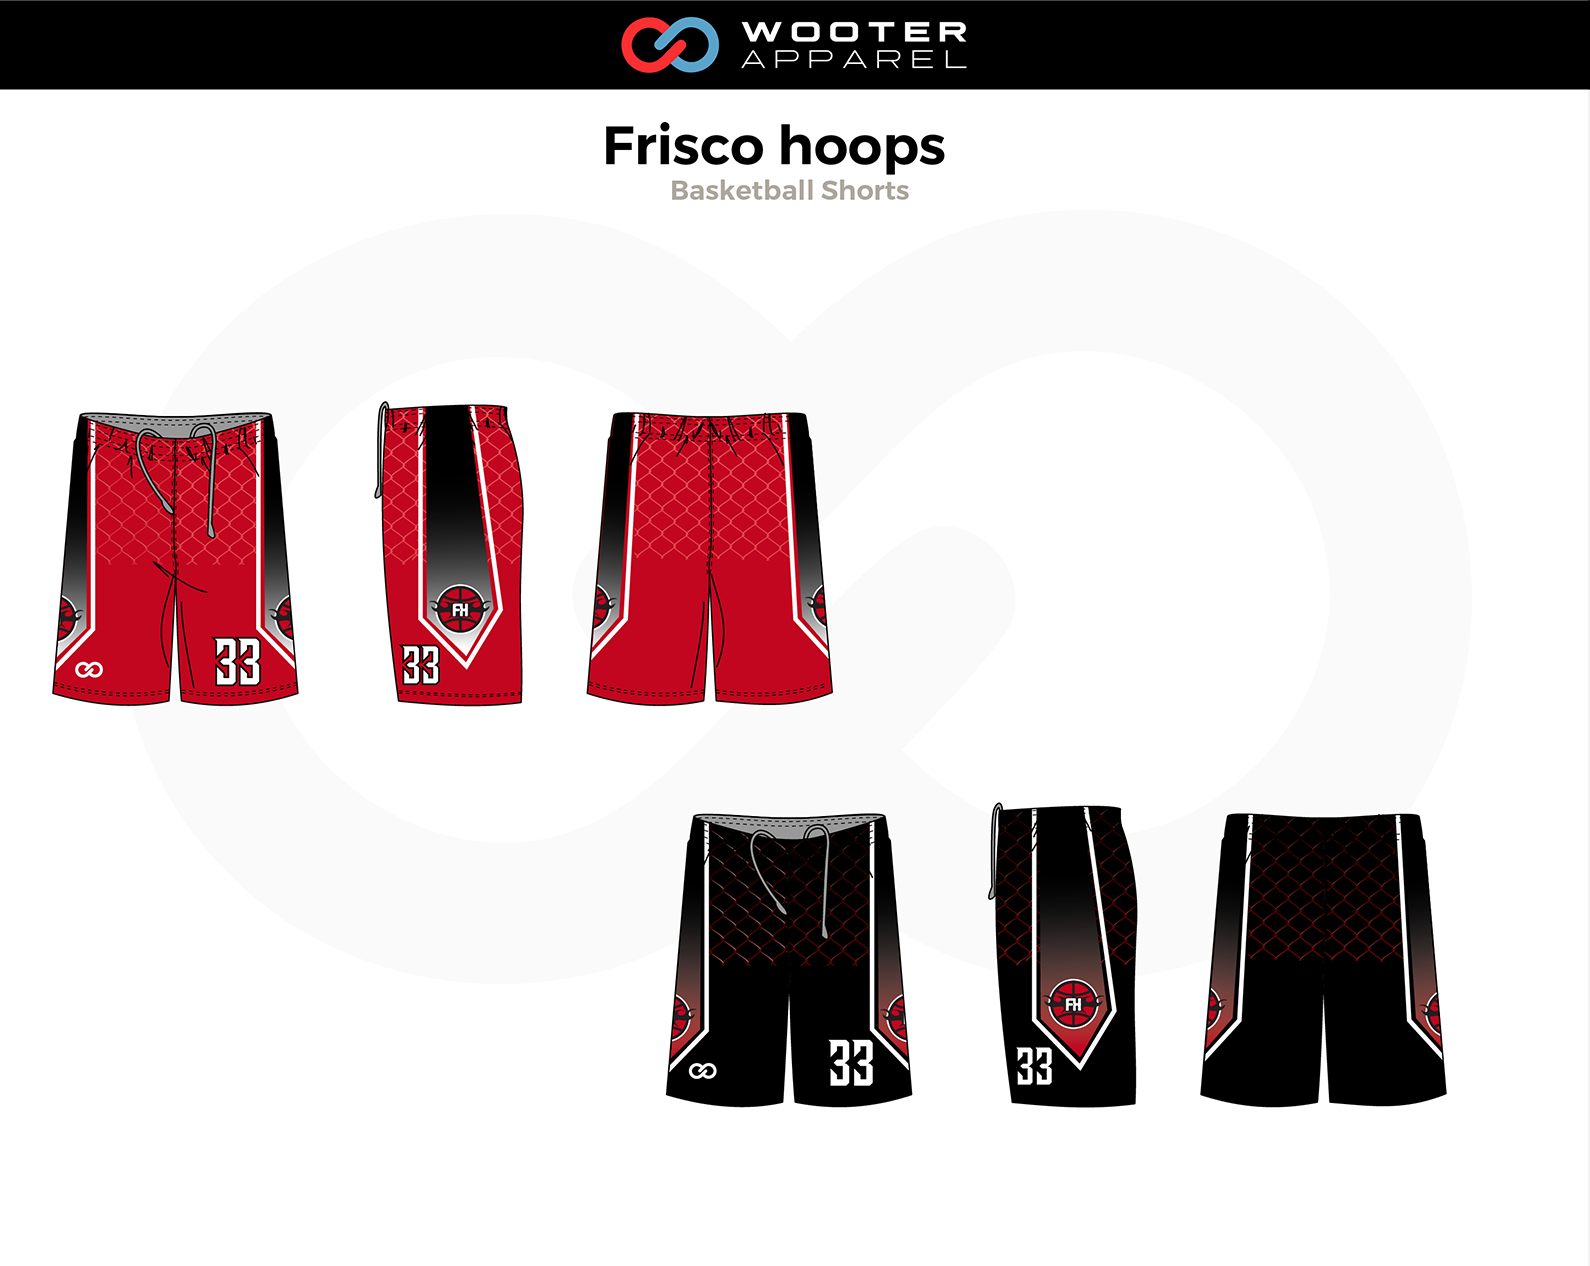 Frisco Hoops - Reversible basketball shorts-01.png